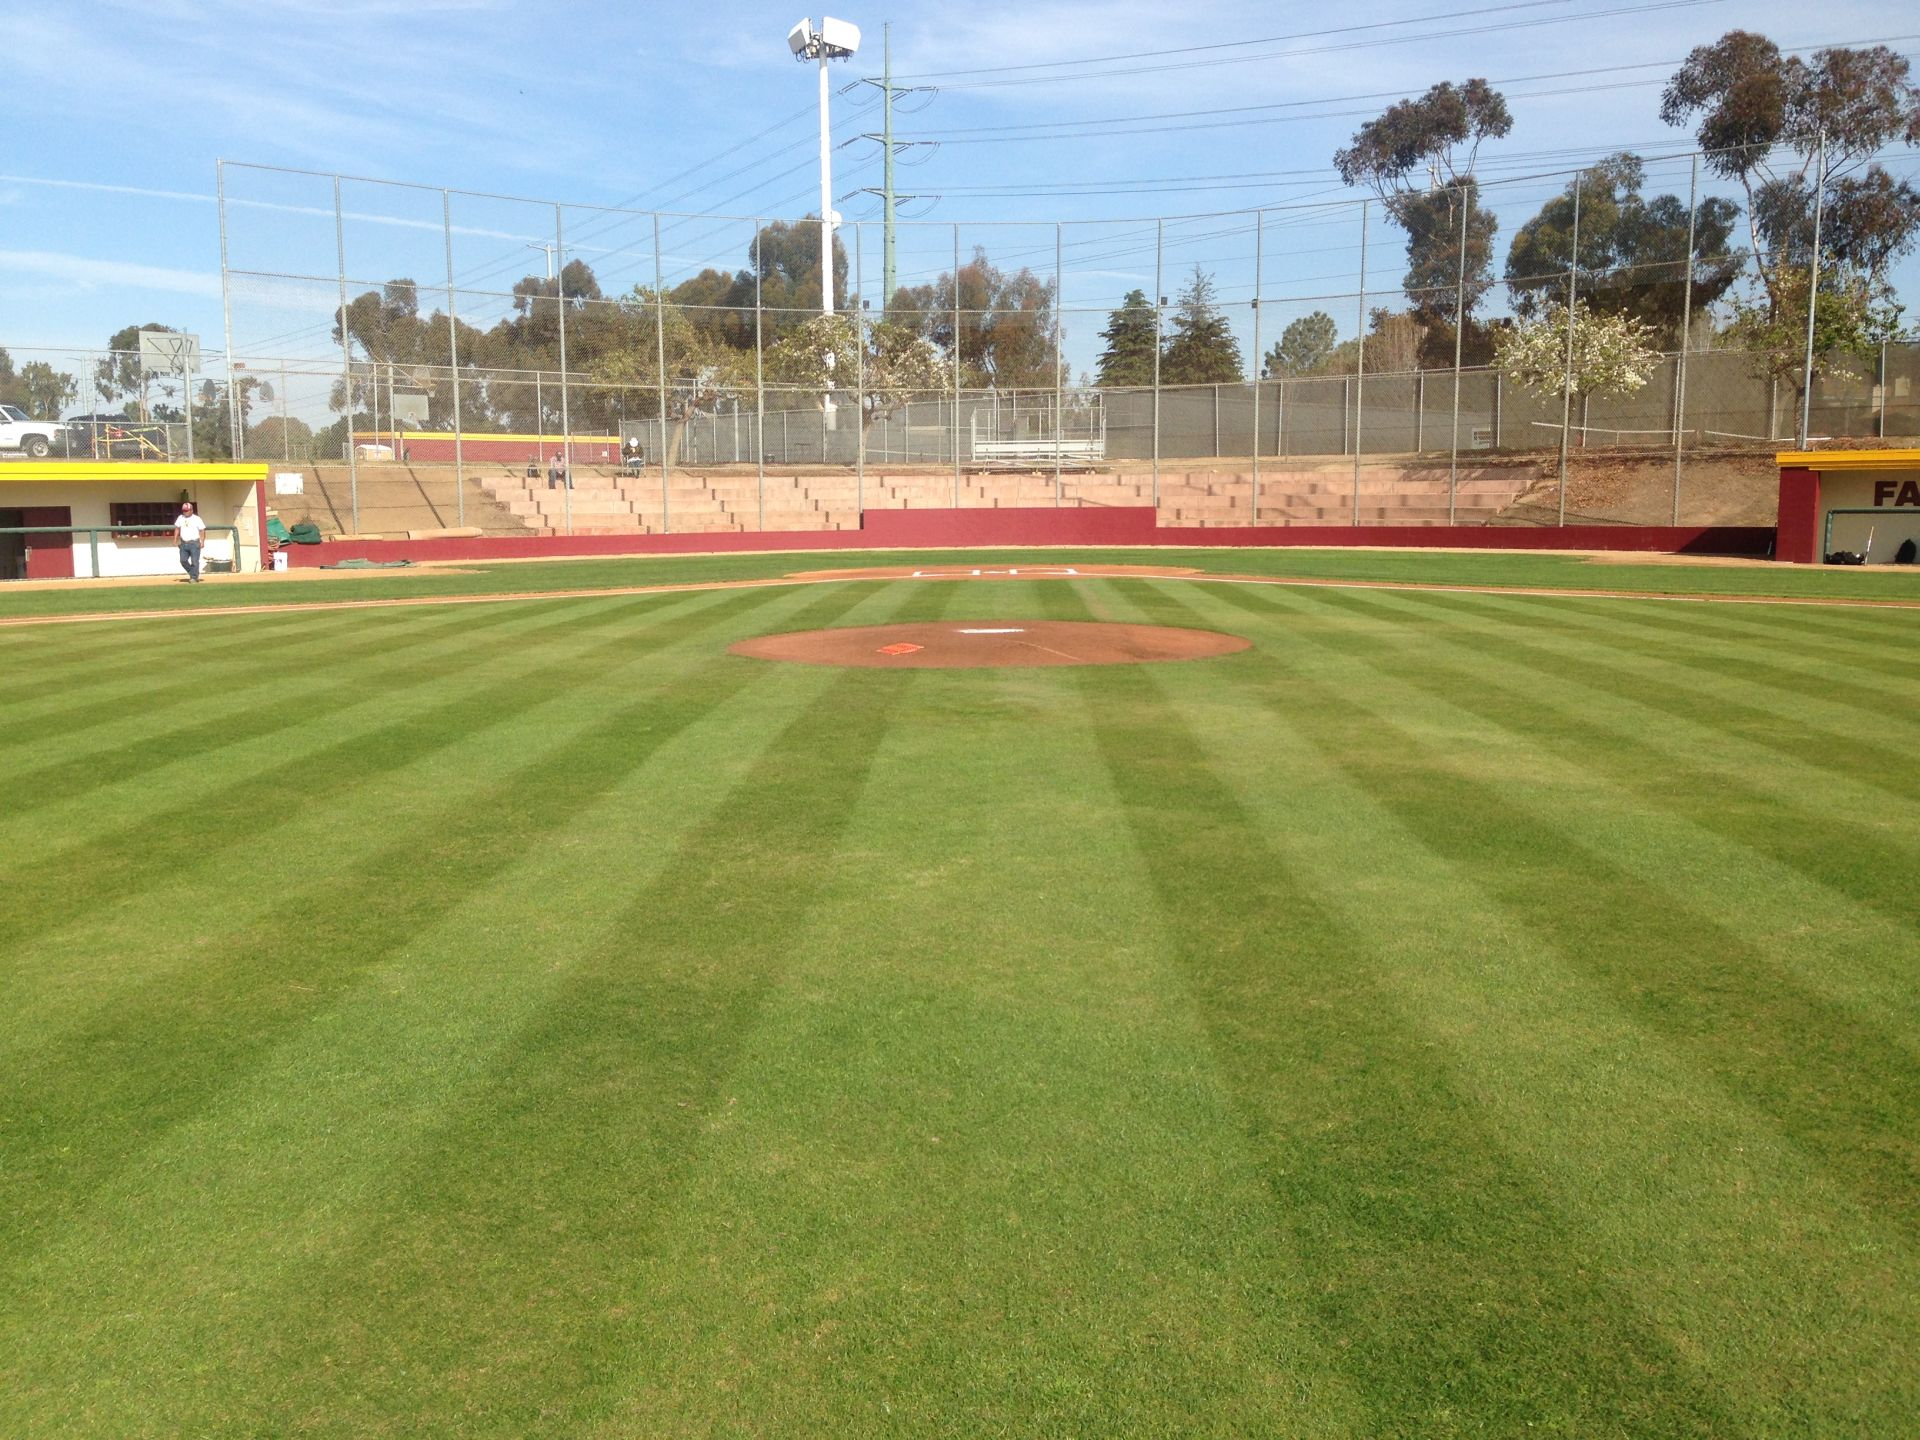 Torrey Pines High School Baseball Field